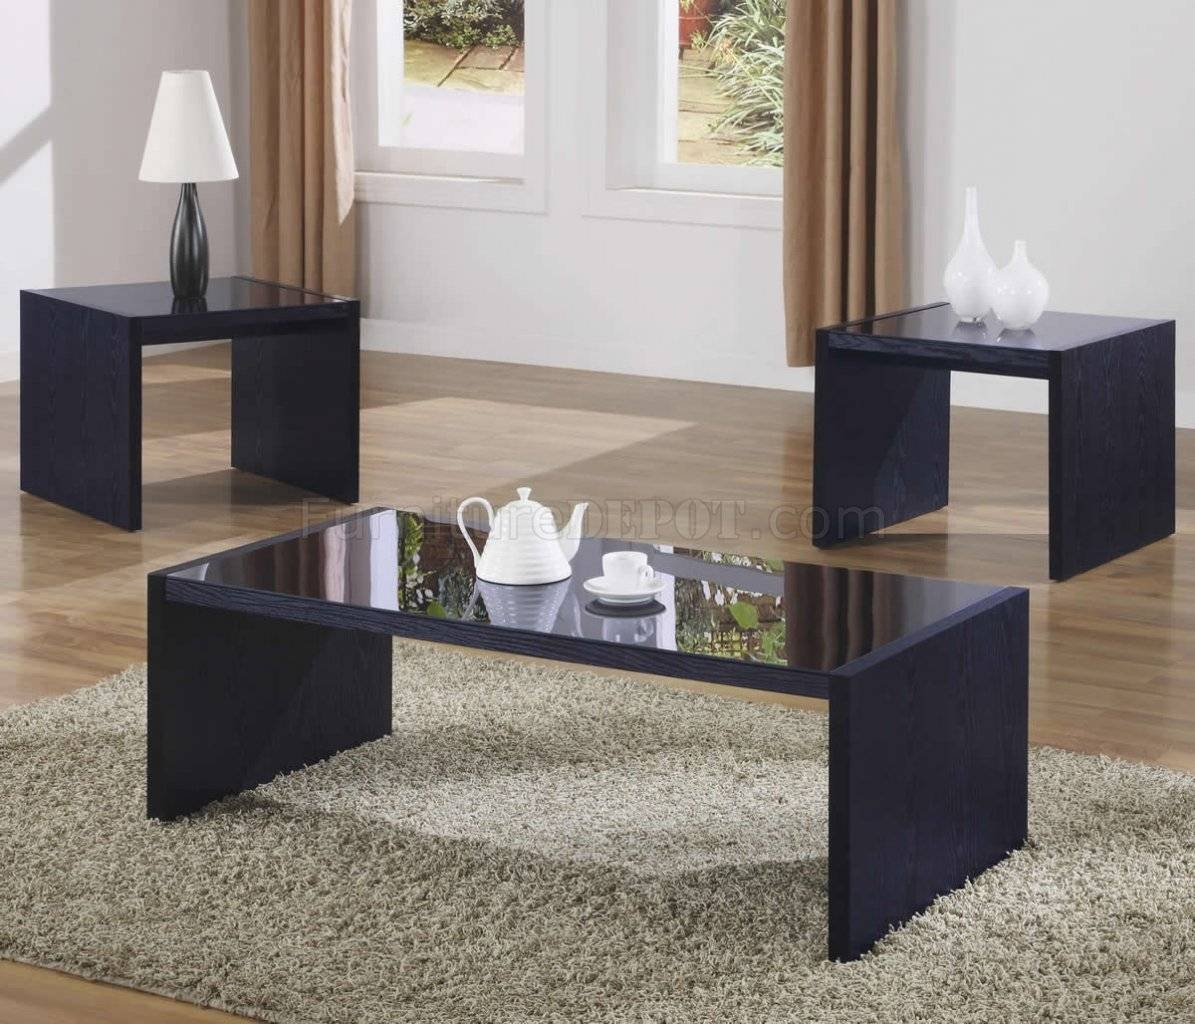 Black Modern 3Pc Coffee Table Set W/black Glass Tops inside Dark Coffee Tables (Image 3 of 30)